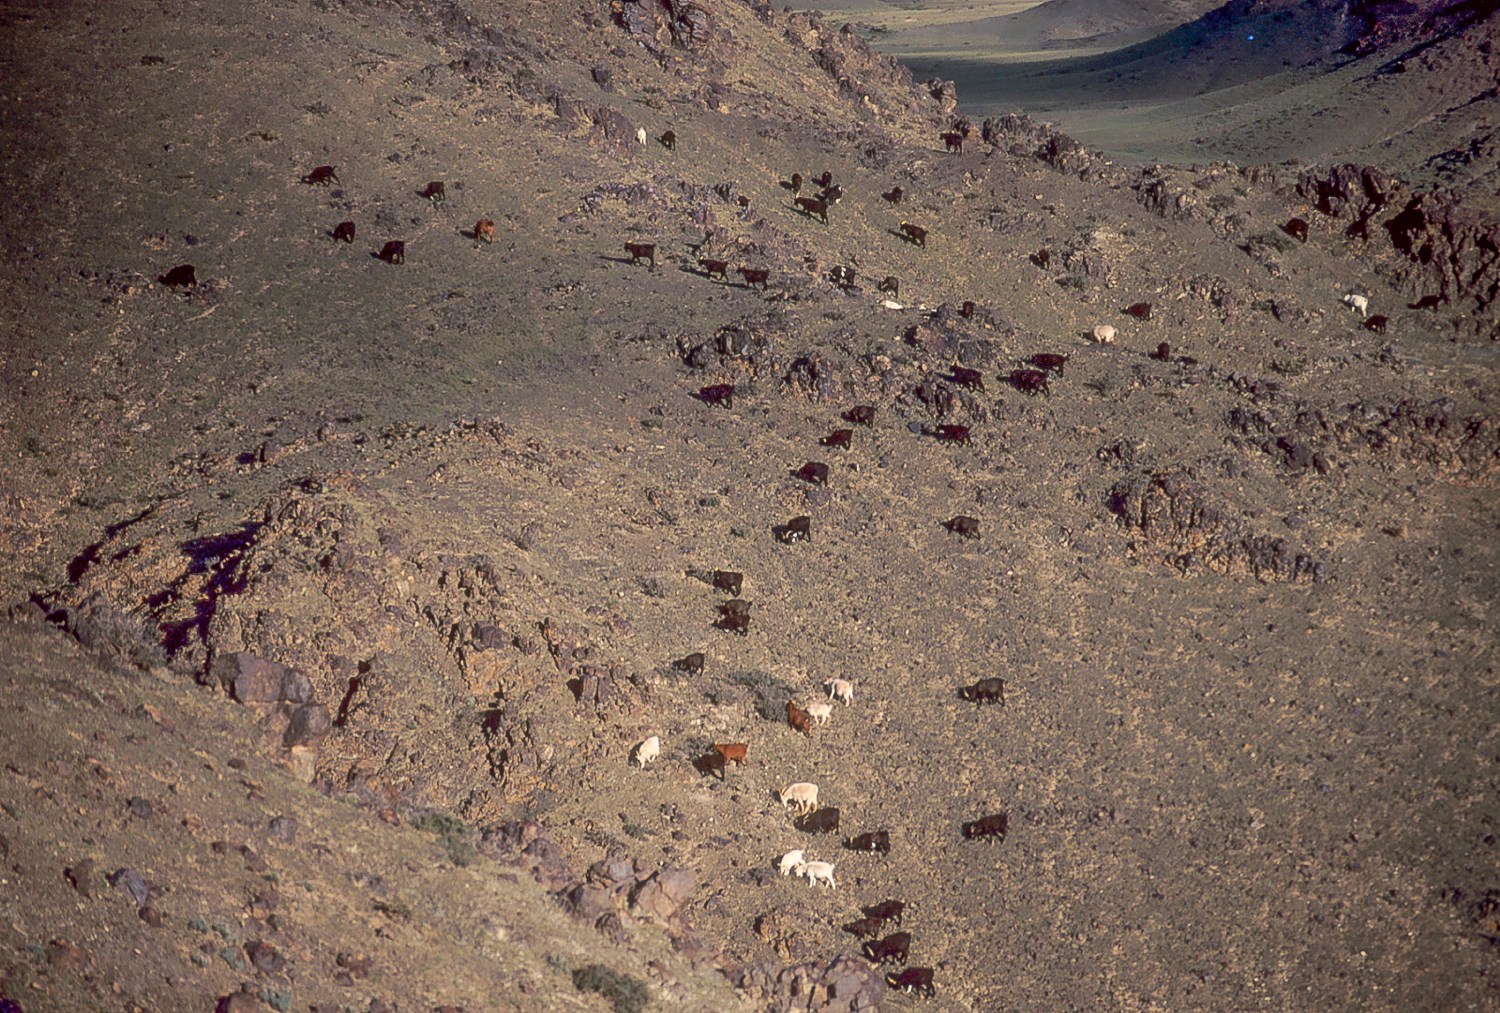 Cashmere goats in the Gobi Desert-Mongolia